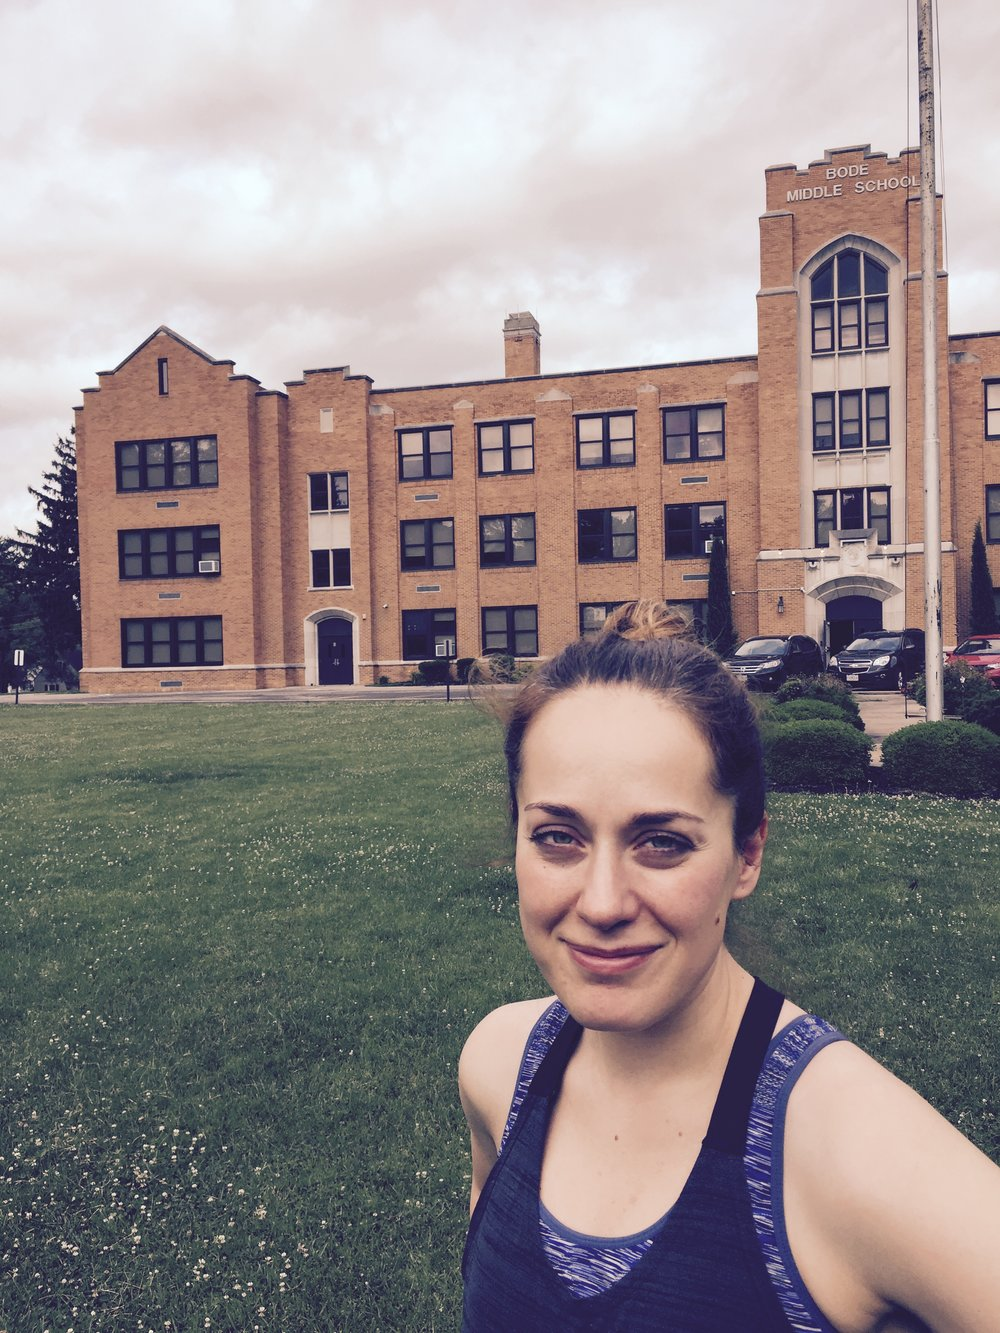 July 2017: Standing in front of the school that gave me the roughest years of my young life--George Bode Middle School.